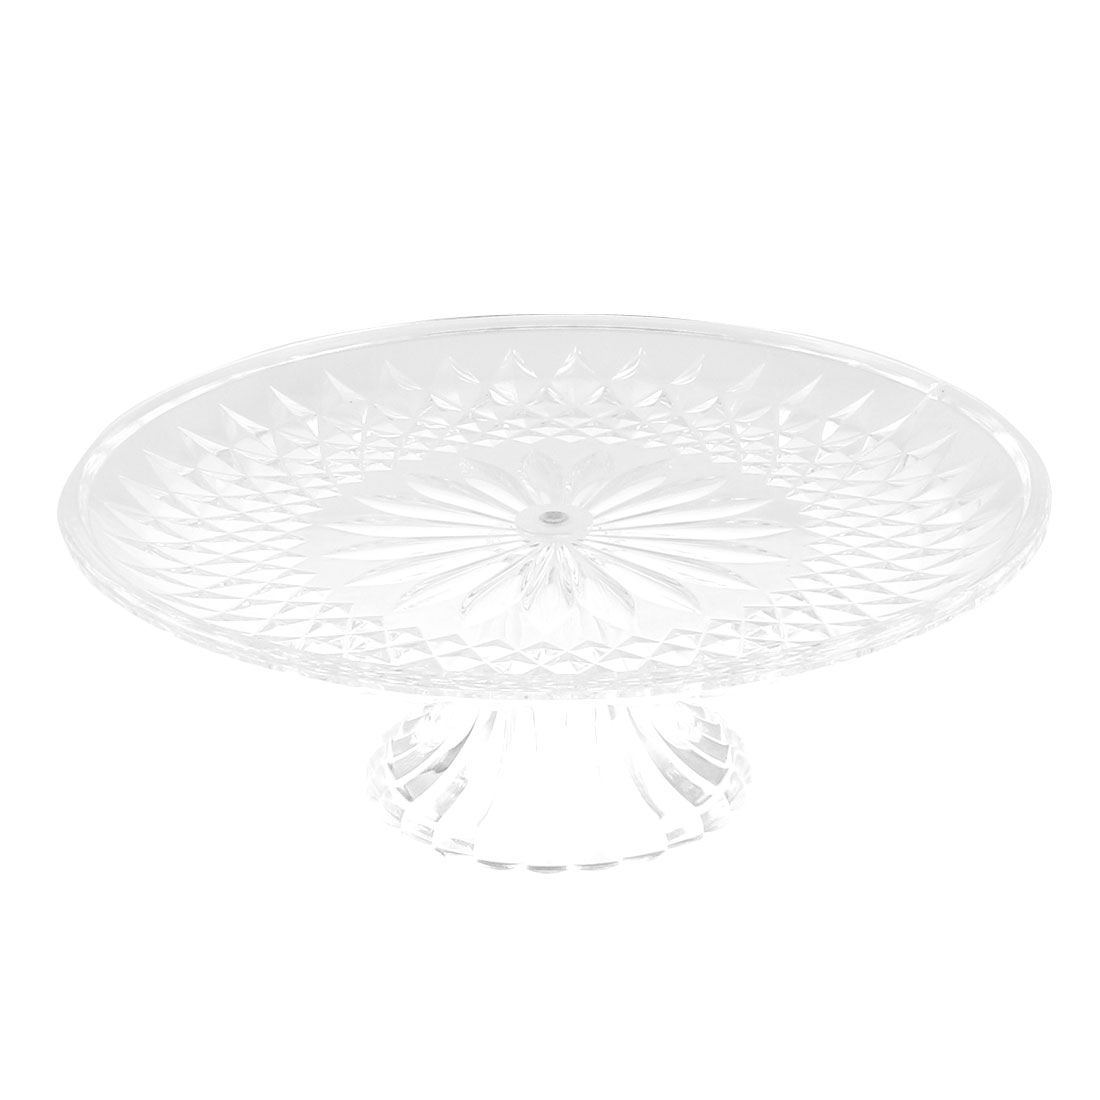 Plastic Round Flower Pattern Fruit Vegetable Plate Container Tray 25cm Dia Clear